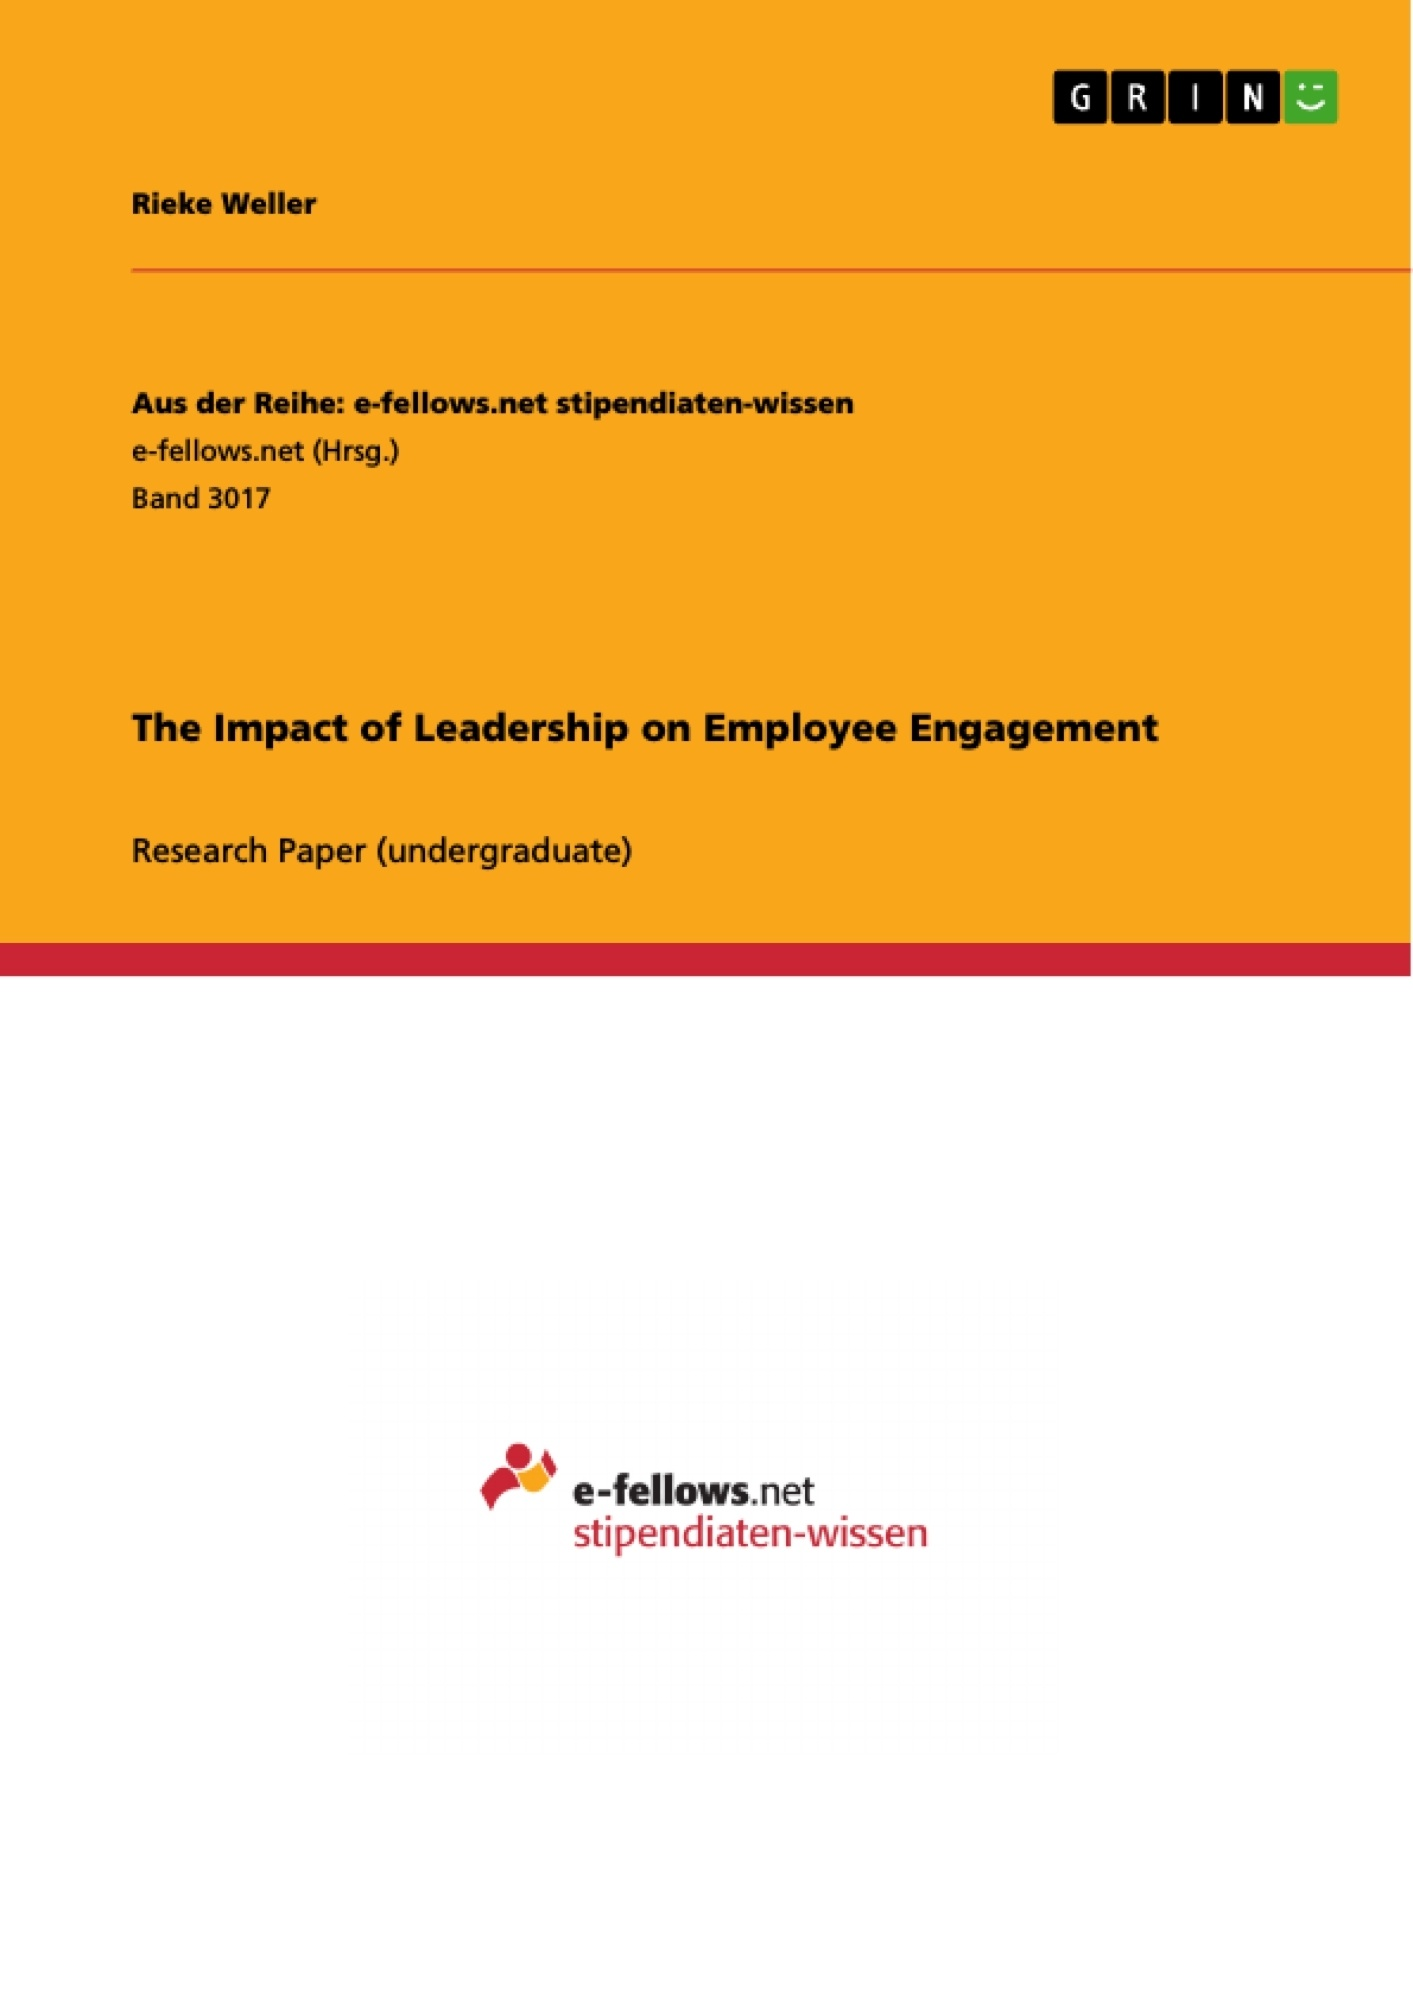 Title: The Impact of Leadership on Employee Engagement